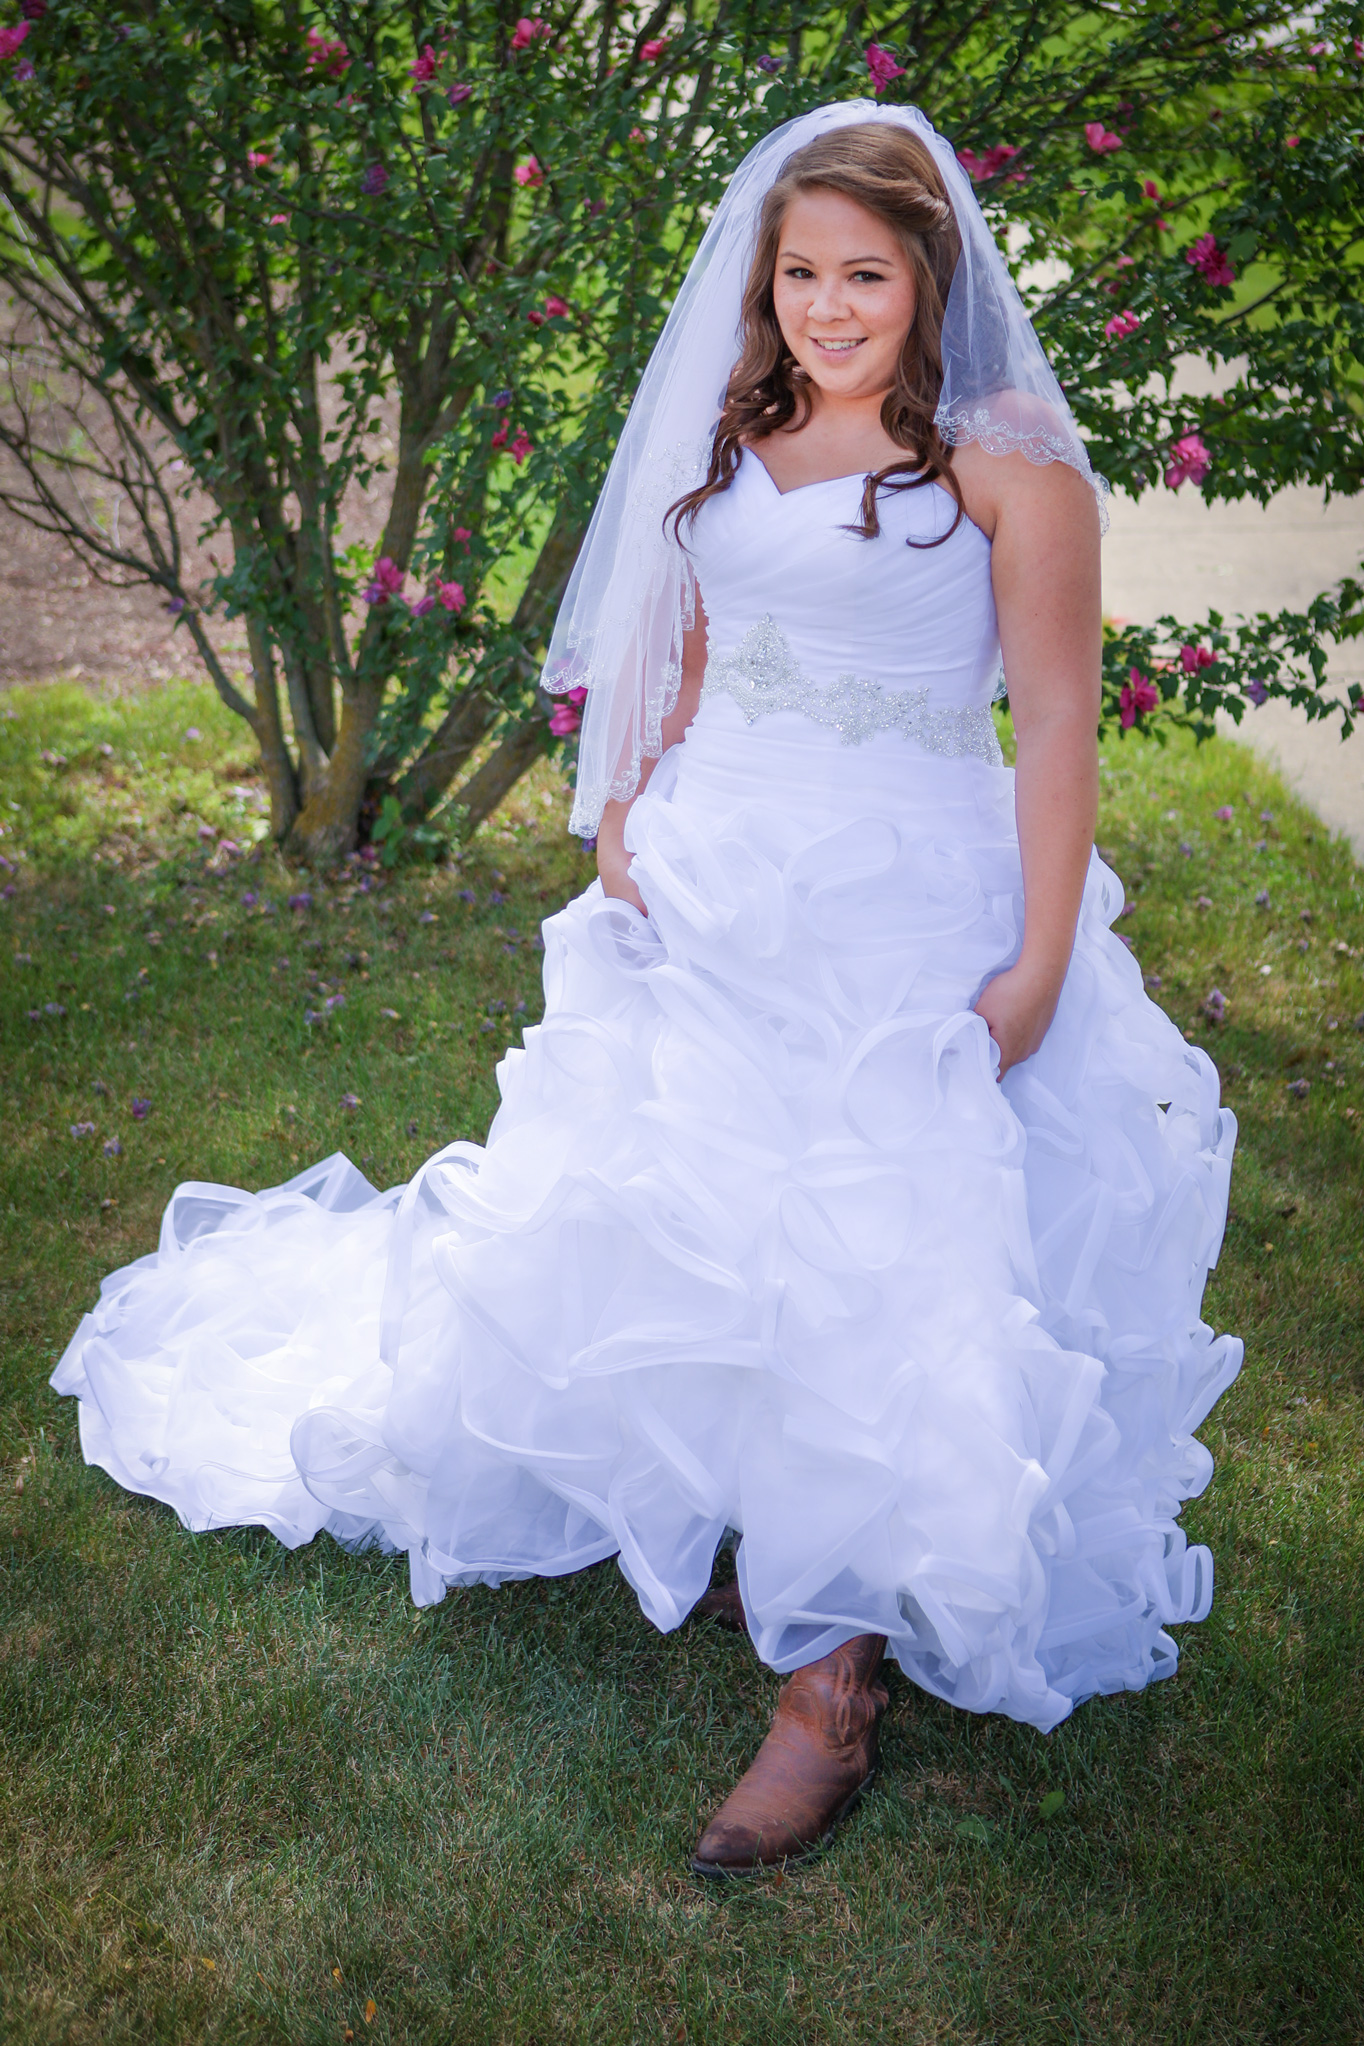 annie_matthew_south_barrington_il_outdoor_wedding_bride_1.jpg